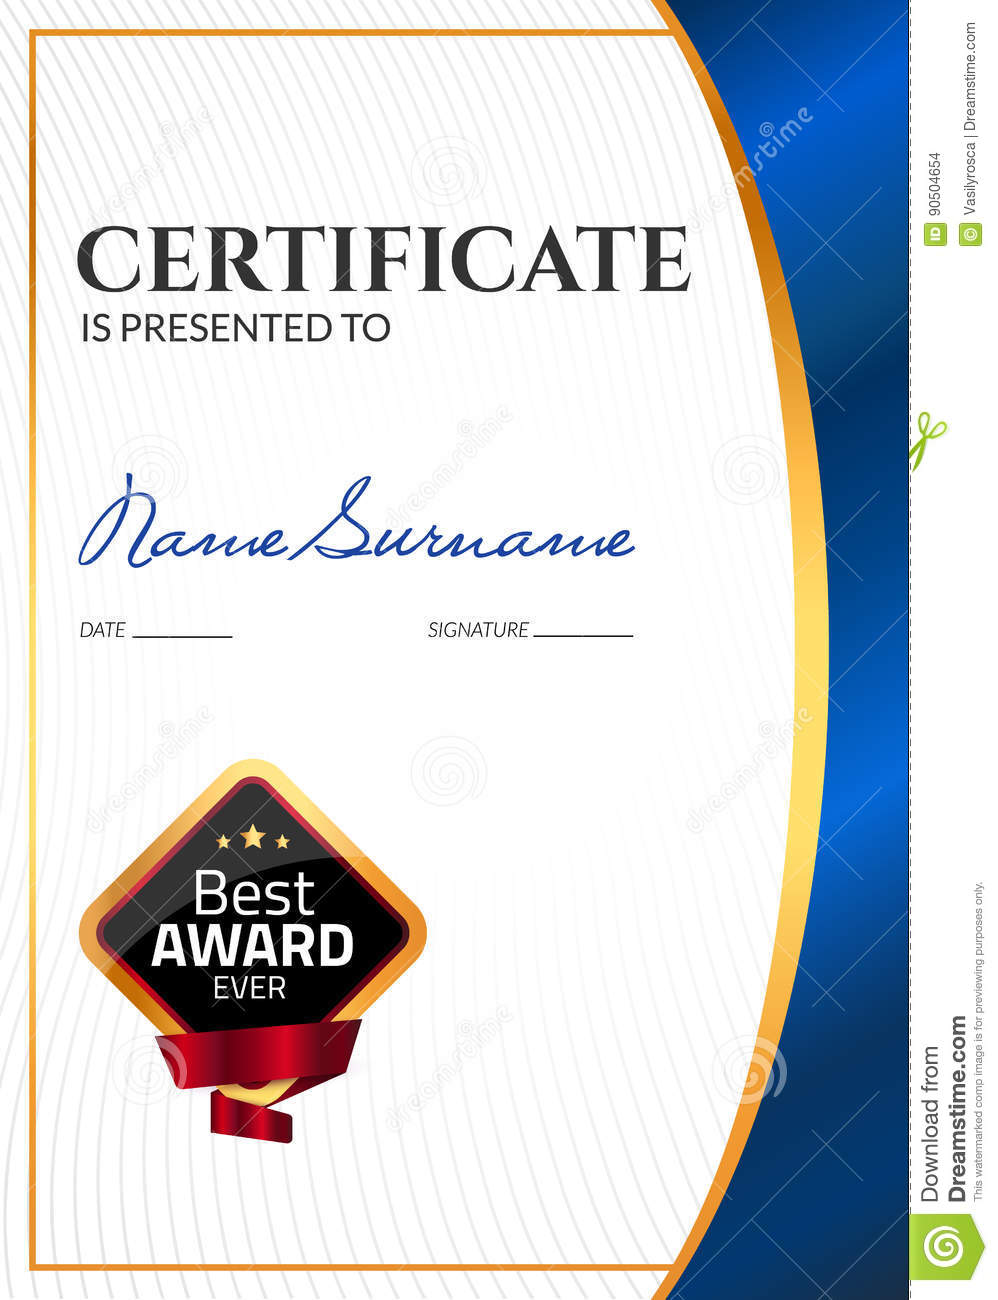 certificate template luxury award  vector business diploma with seal stamp  gift coupon or